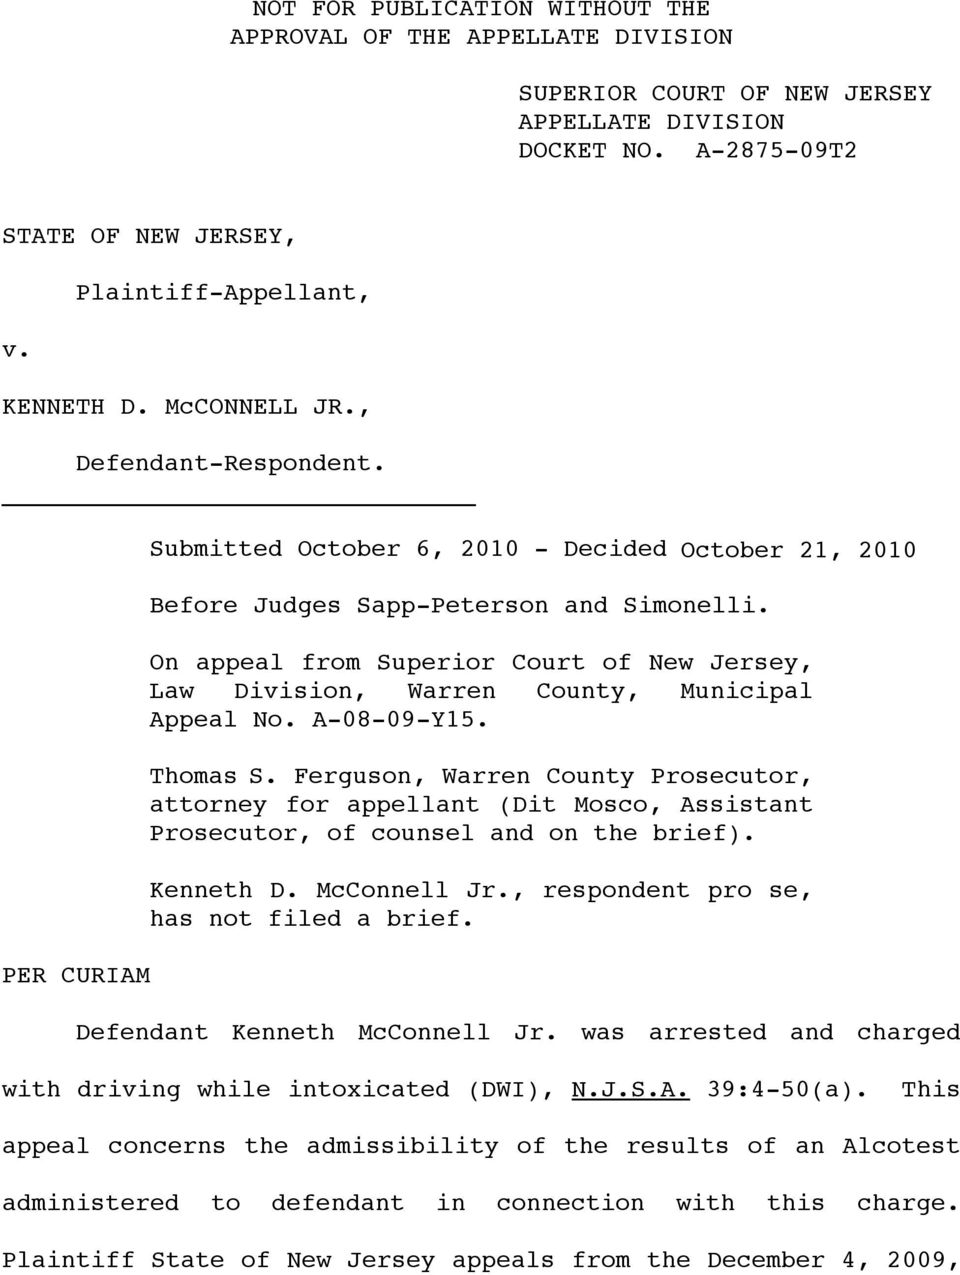 On appeal from Superior Court of New Jersey, Law Division, Warren County, Municipal Appeal No. A-08-09-Y15. Thomas S.